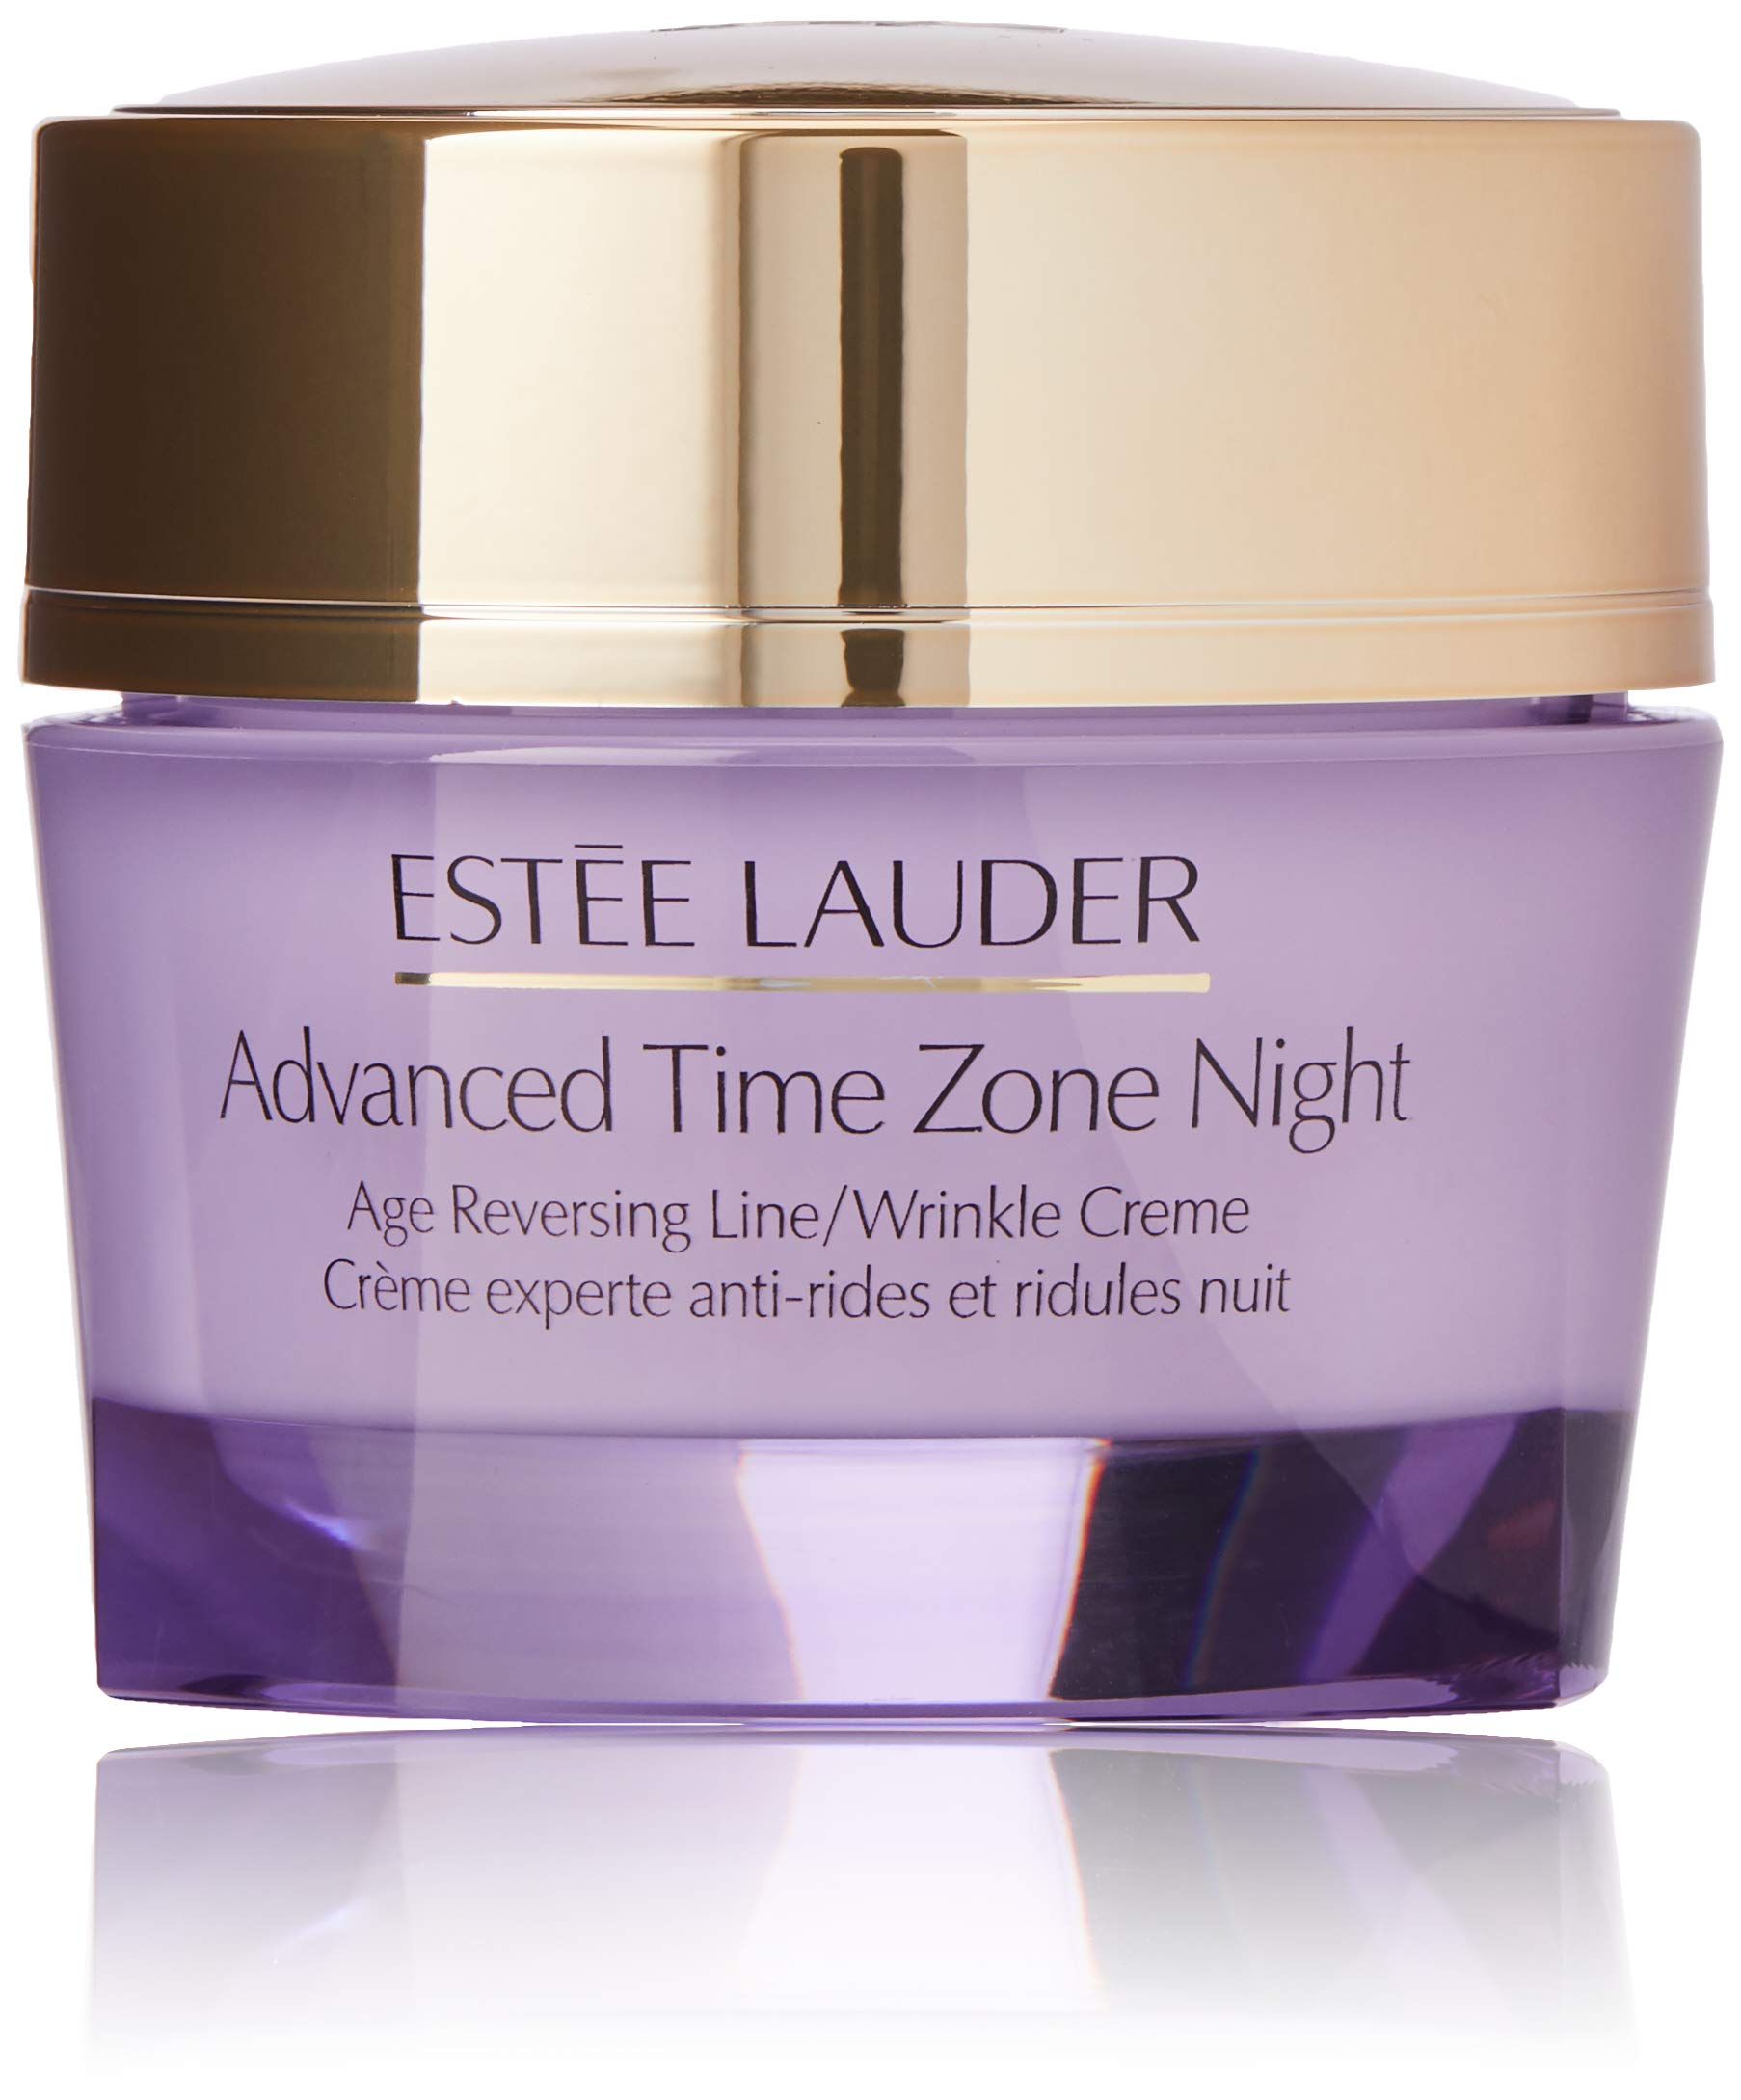 Estee Lauder Advanced Time Zone Night Age Reversing Line/Wrinkle Creme, 1.7 Ounce by Estee Lauder (Image #1)